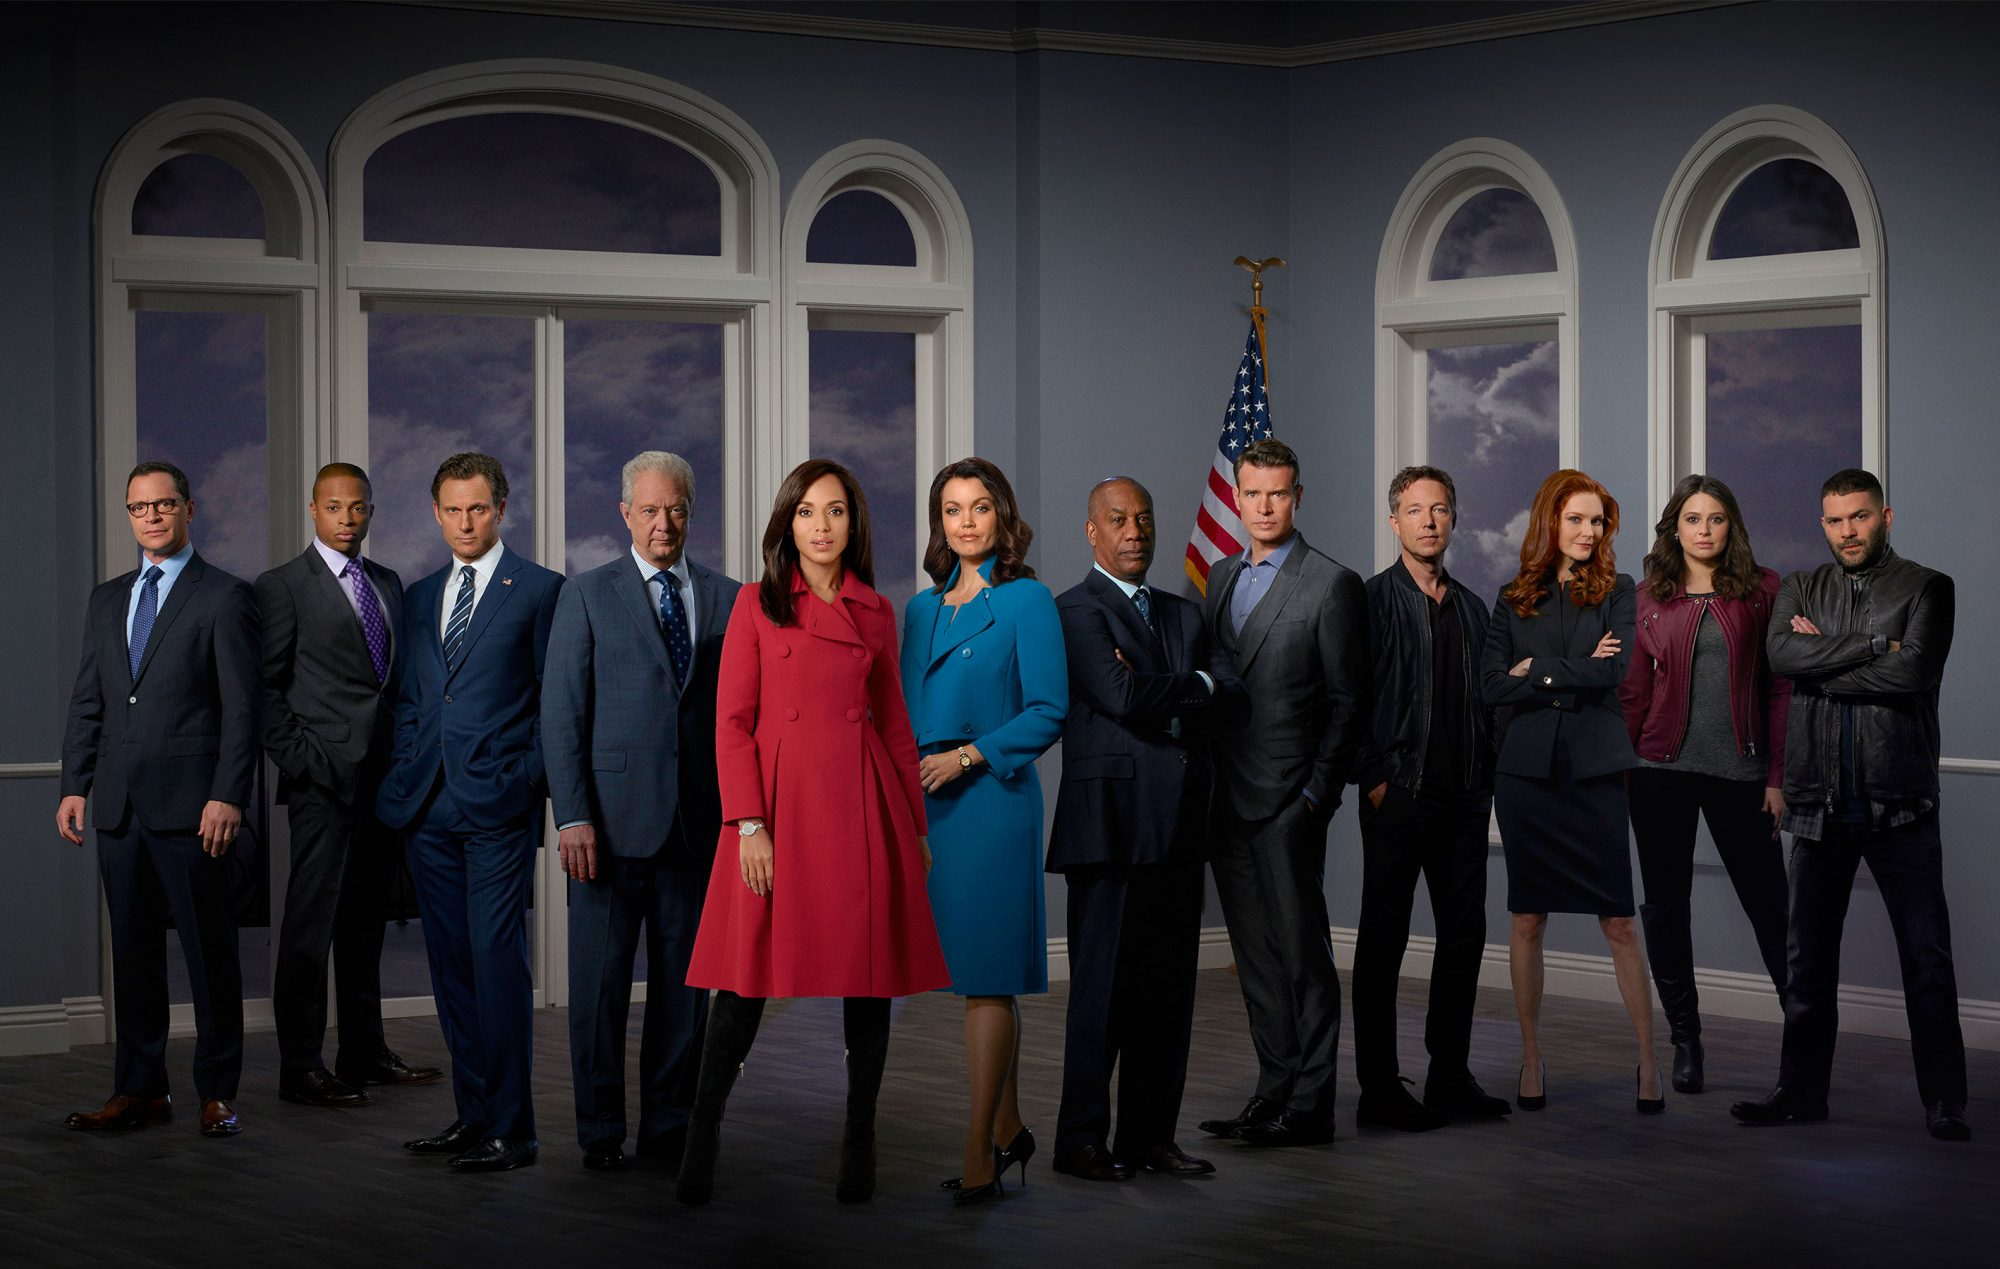 JOSHUA MALINA, CORNELIUS SMITH, JR., TONY GOLDWYN, JEFF PERRY, KERRY WASHINGTON, BELLAMY YOUNG, JOE MORTON, SCOTT FOLEY, GEORGE NEWBERN, DARBY STANCHFIELD, KATIE LOWES, GUILLERMO DIAZ